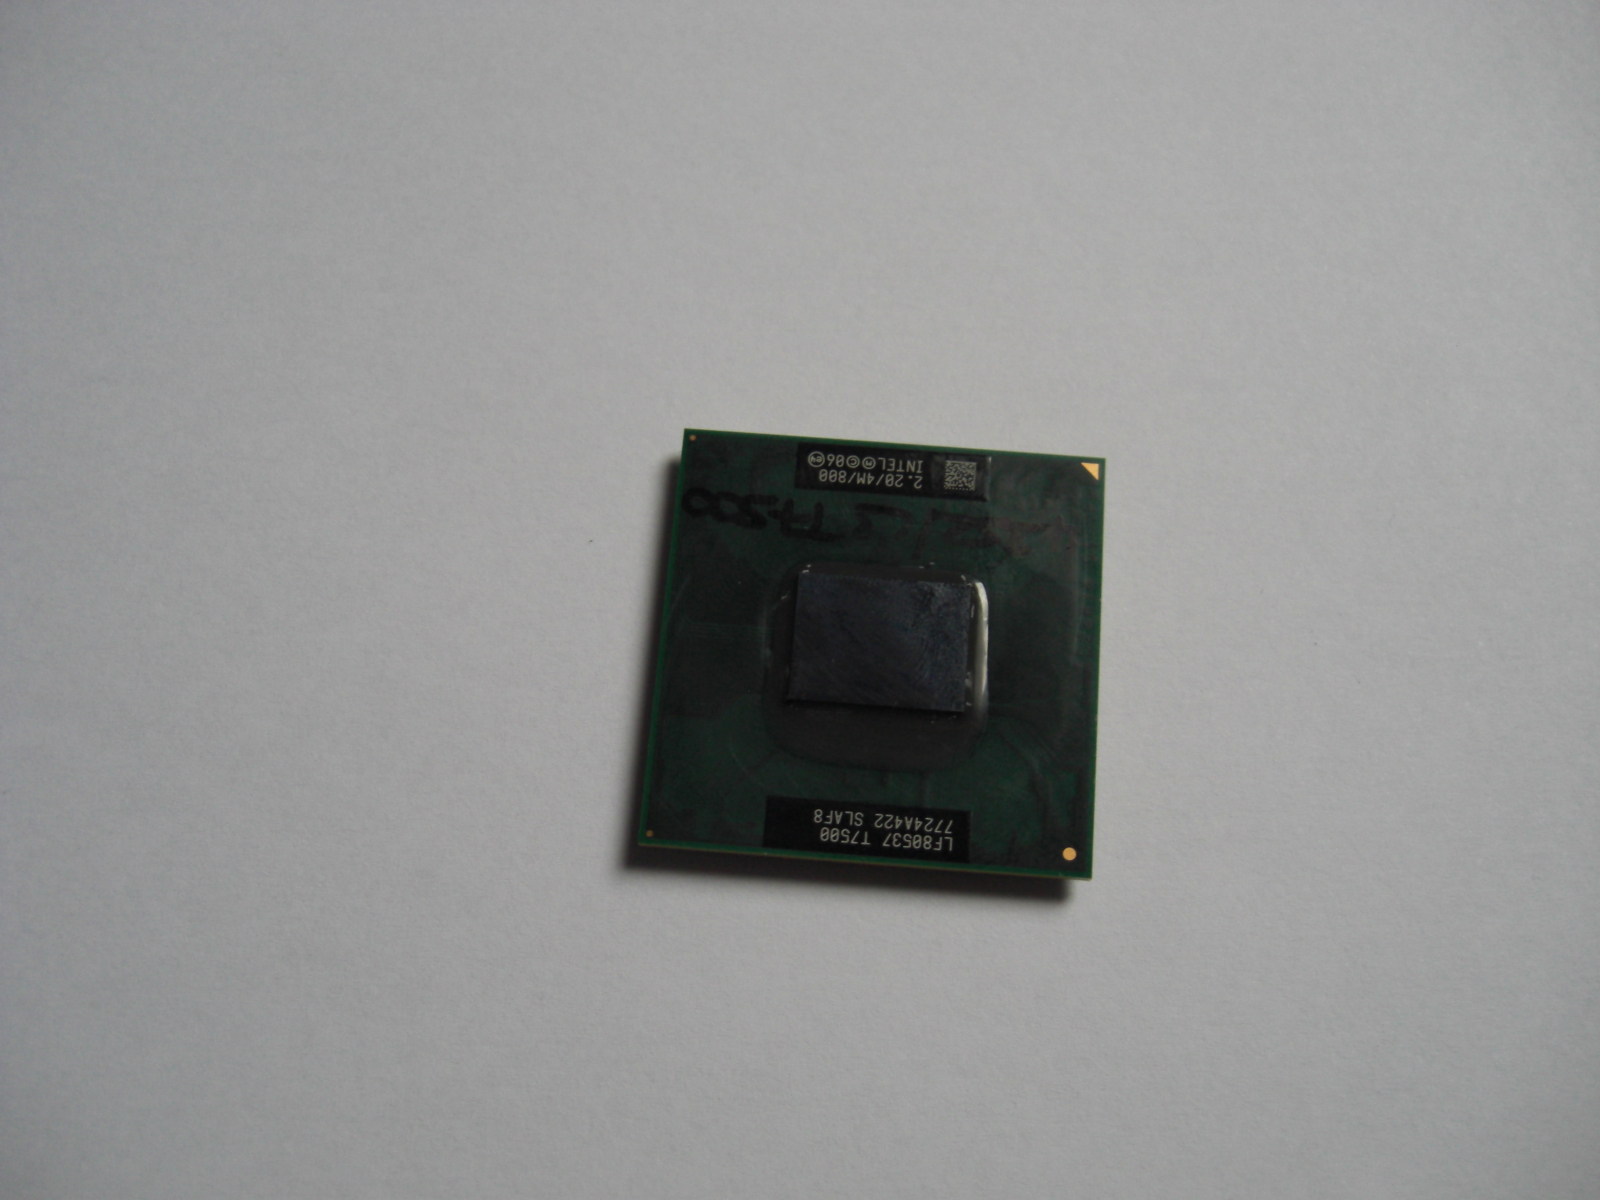 INTEL CORE 2 DUO M 2.2GHZ 800MHZ SLGLK